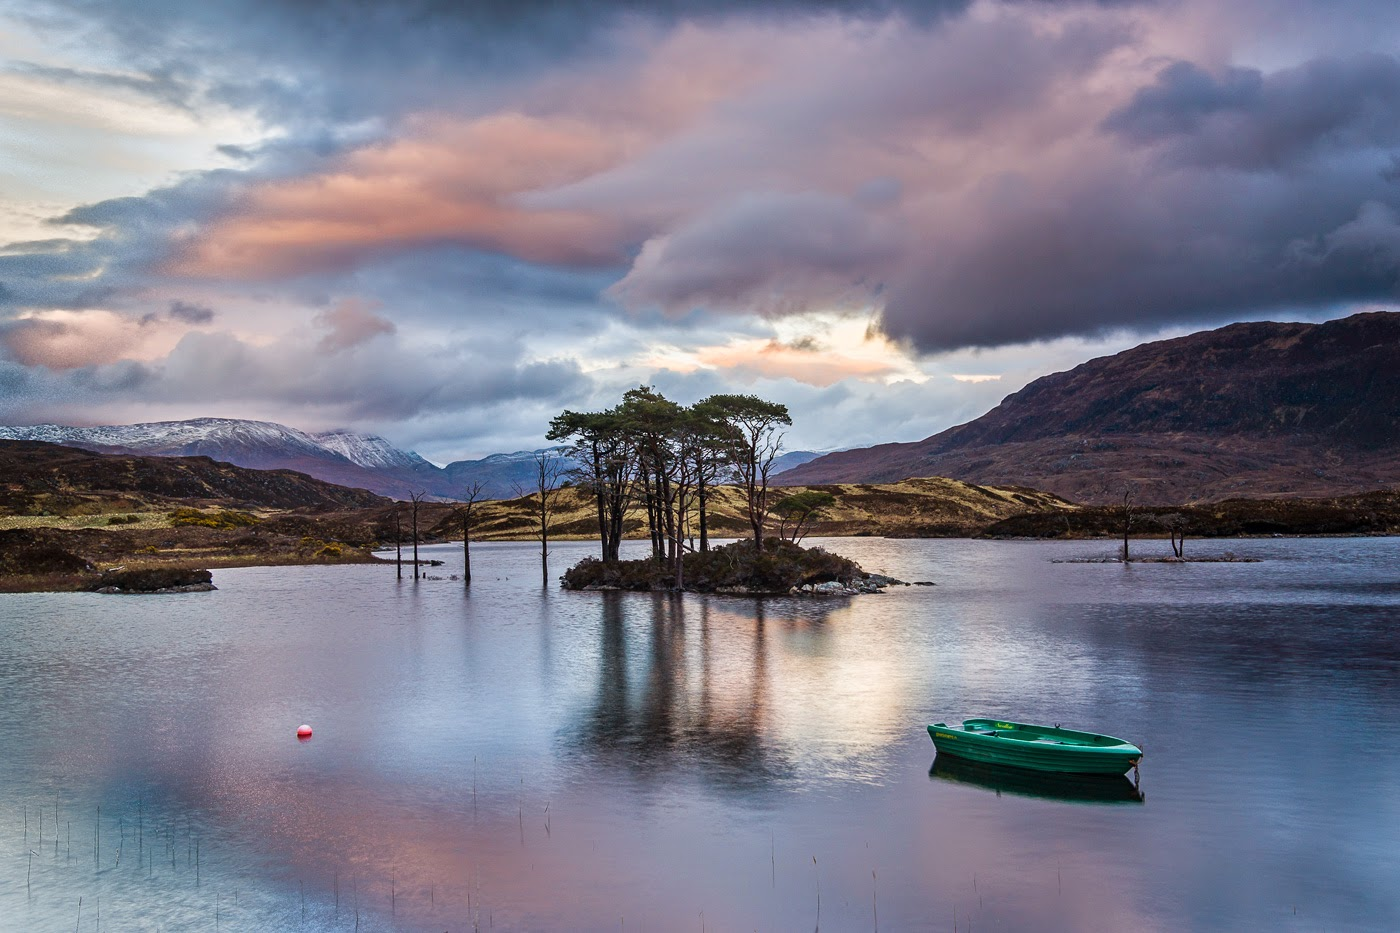 With this image made during a short but beautifully colored sunset by the Loch Assynt…